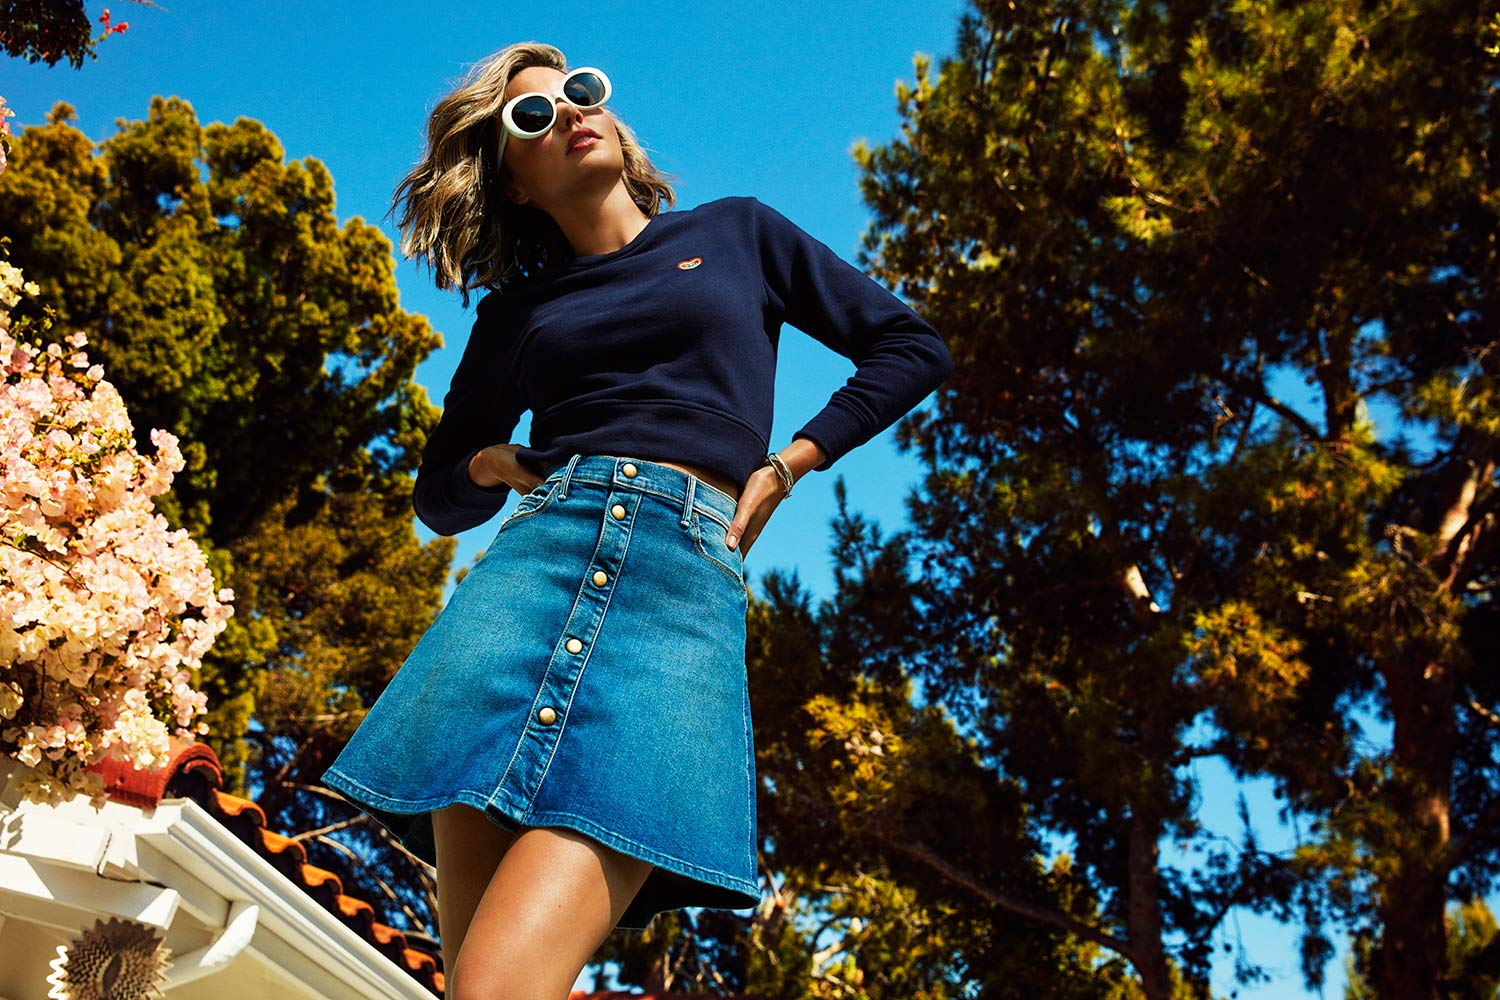 miranda-kerr-x-mother-denim-capsule-collaboration-collection-2